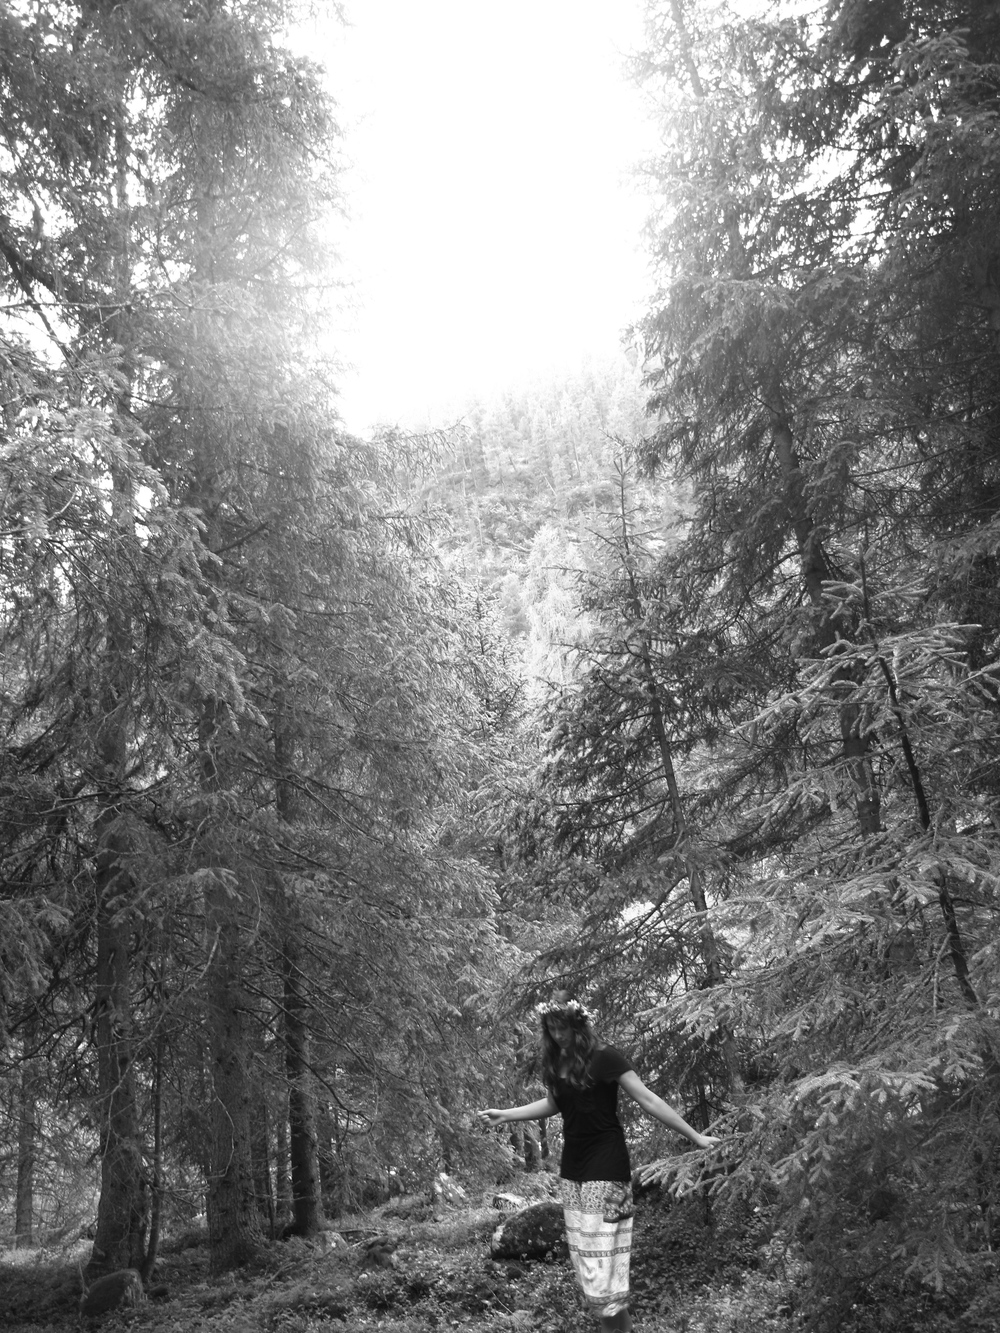 Forest nymph in black and white